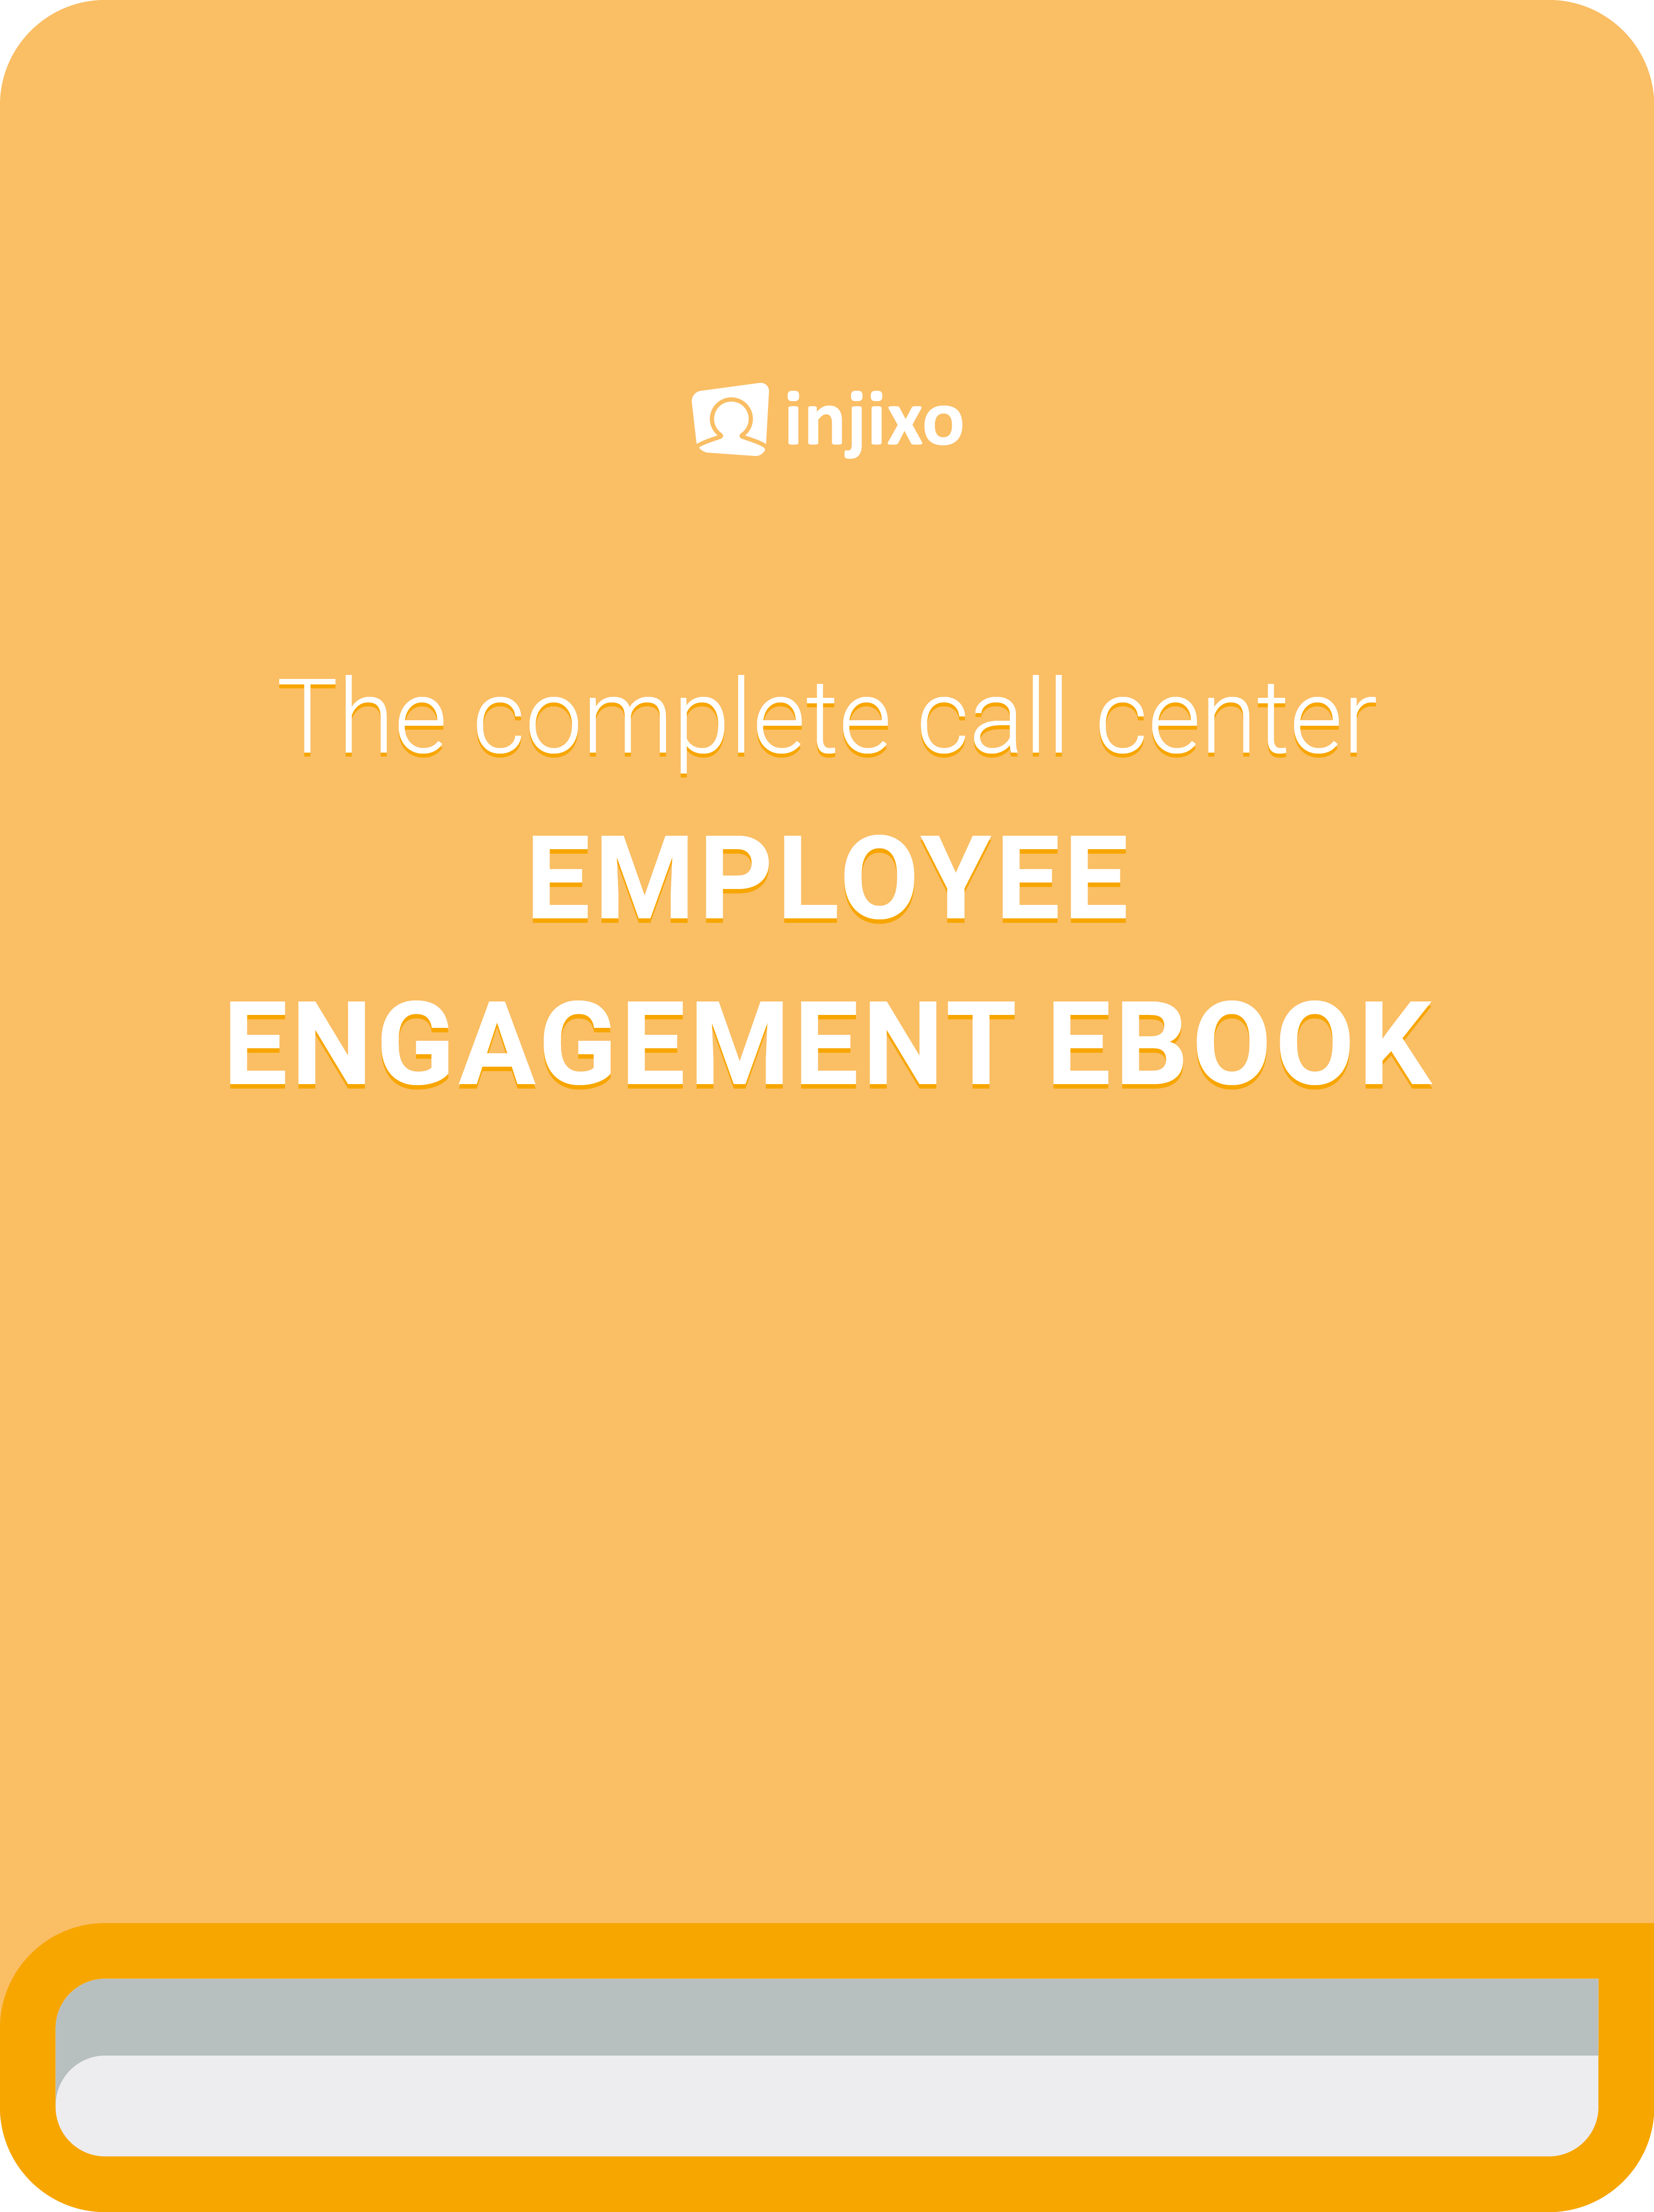 injixo - EN - ebook employee engangement cover.png